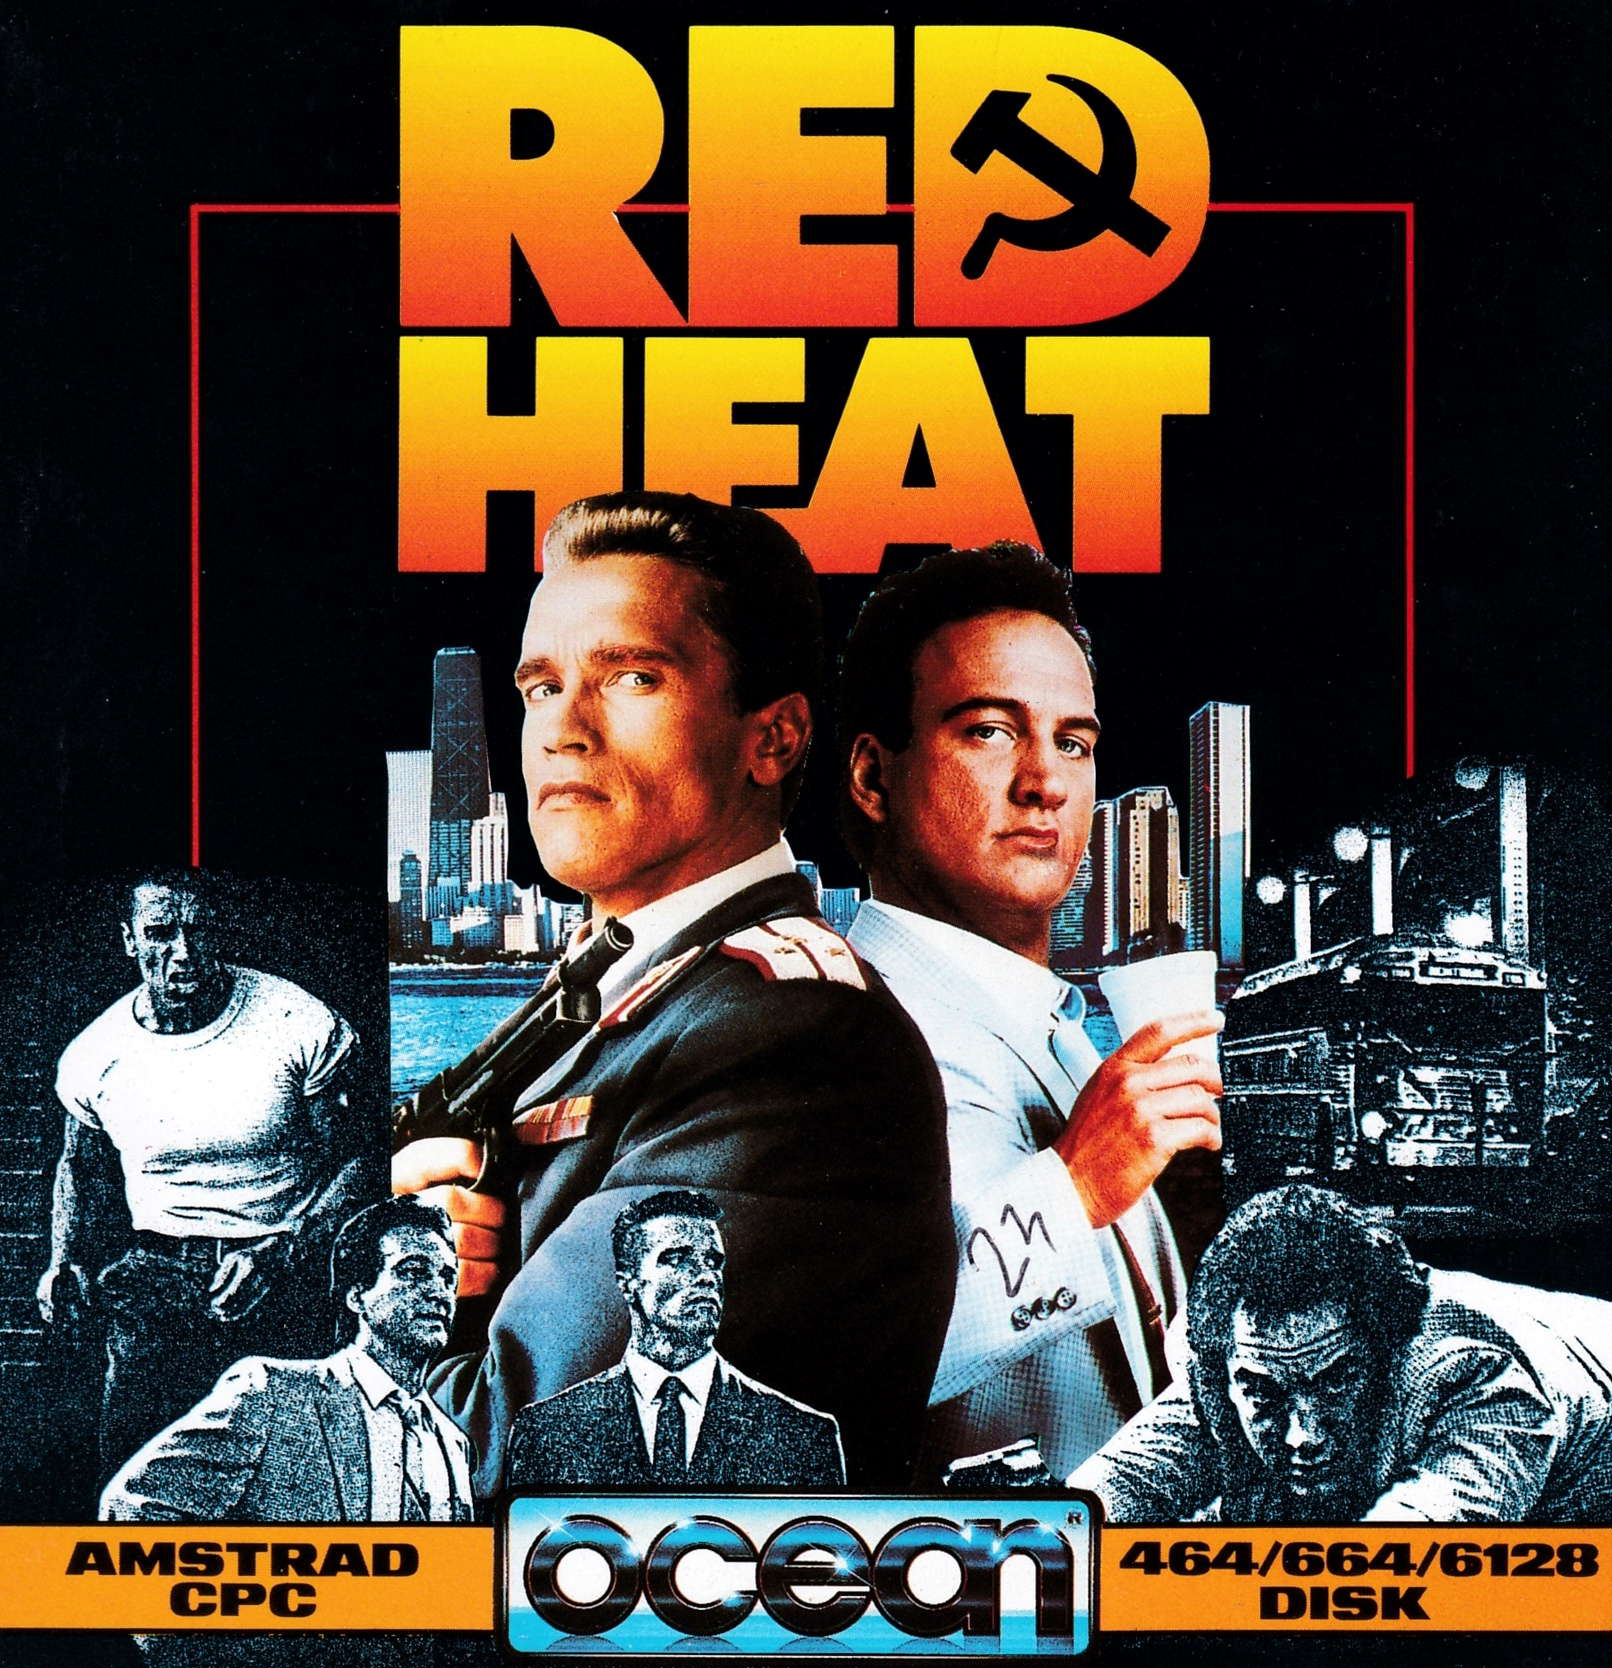 cover of the Amstrad CPC game Red Heat  by GameBase CPC